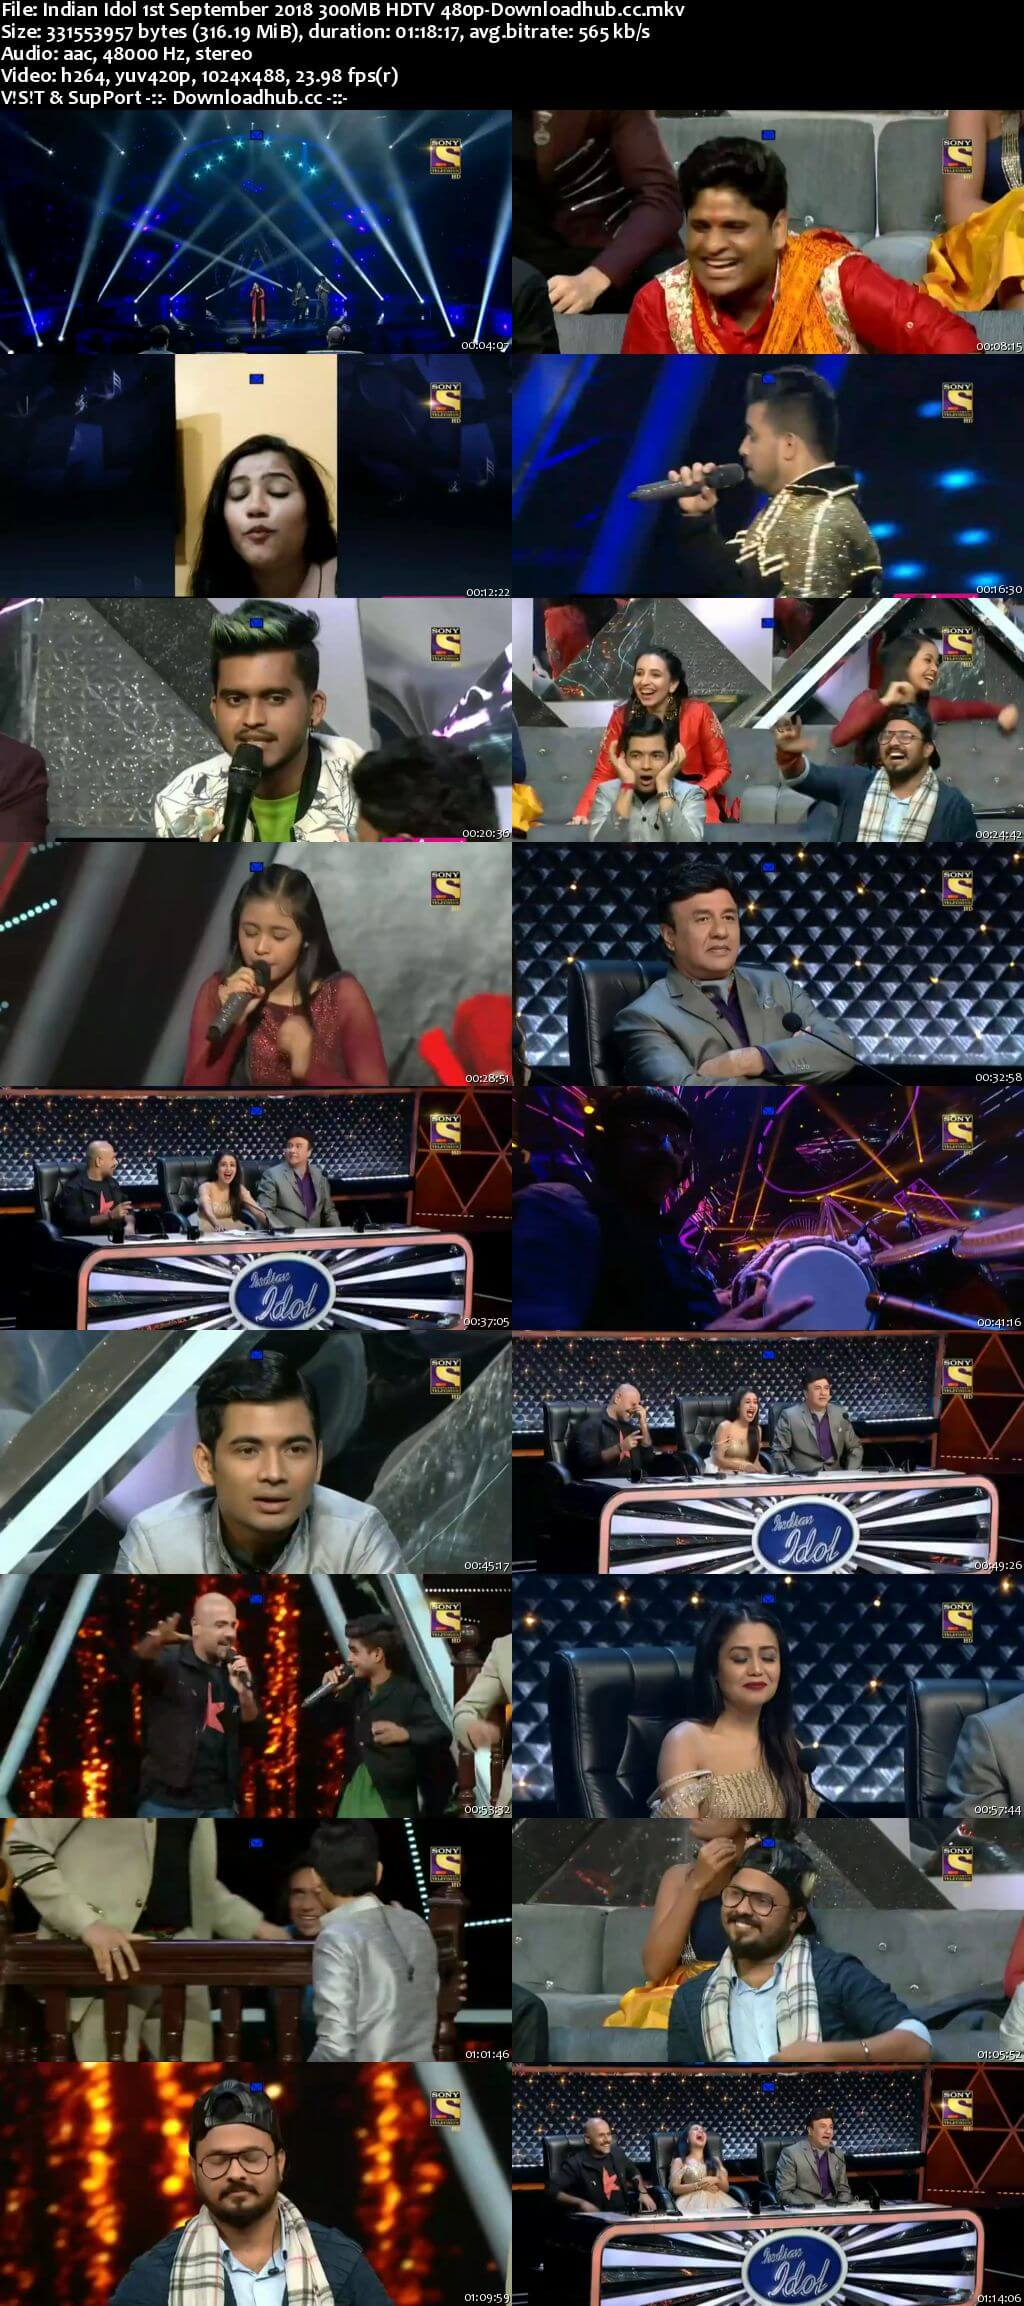 Indian Idol 01 September 2018 Episode 17 HDTV 480p